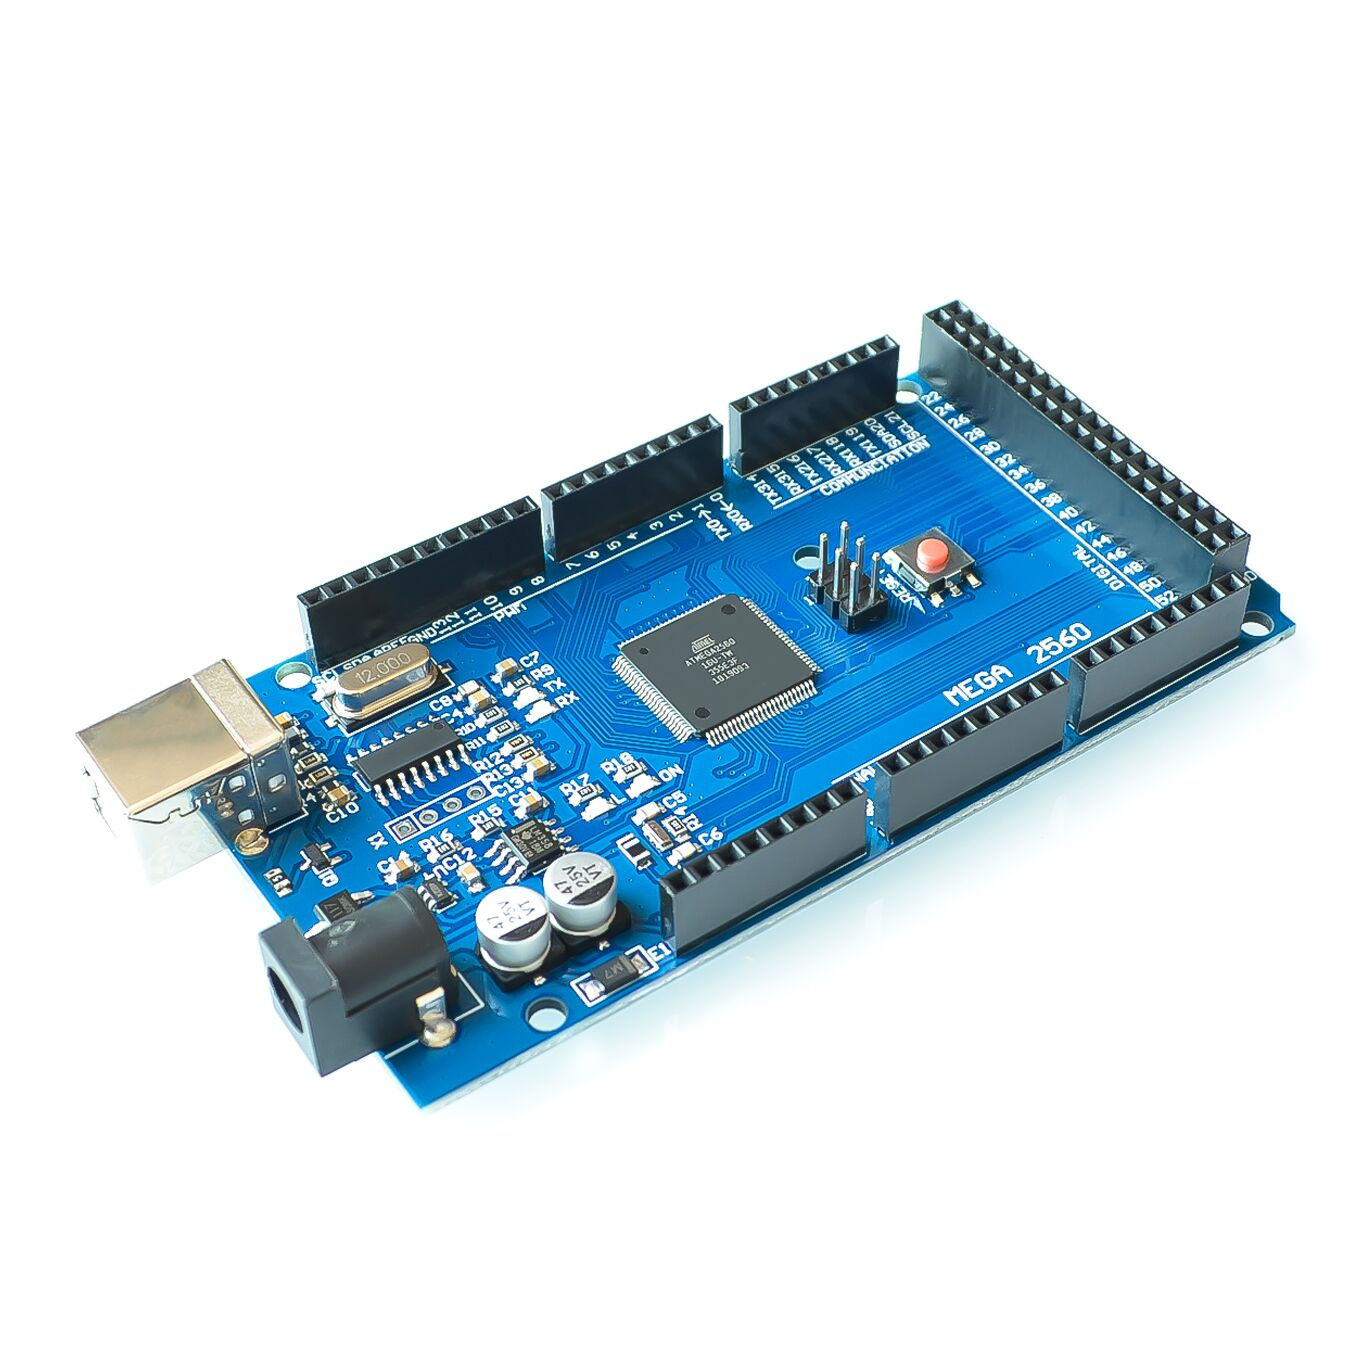 Free shiping !!! 10sets Mega 2560 R3 Mega2560 REV3 ATmega2560-16AU Board + USB Cable compatible for arduino